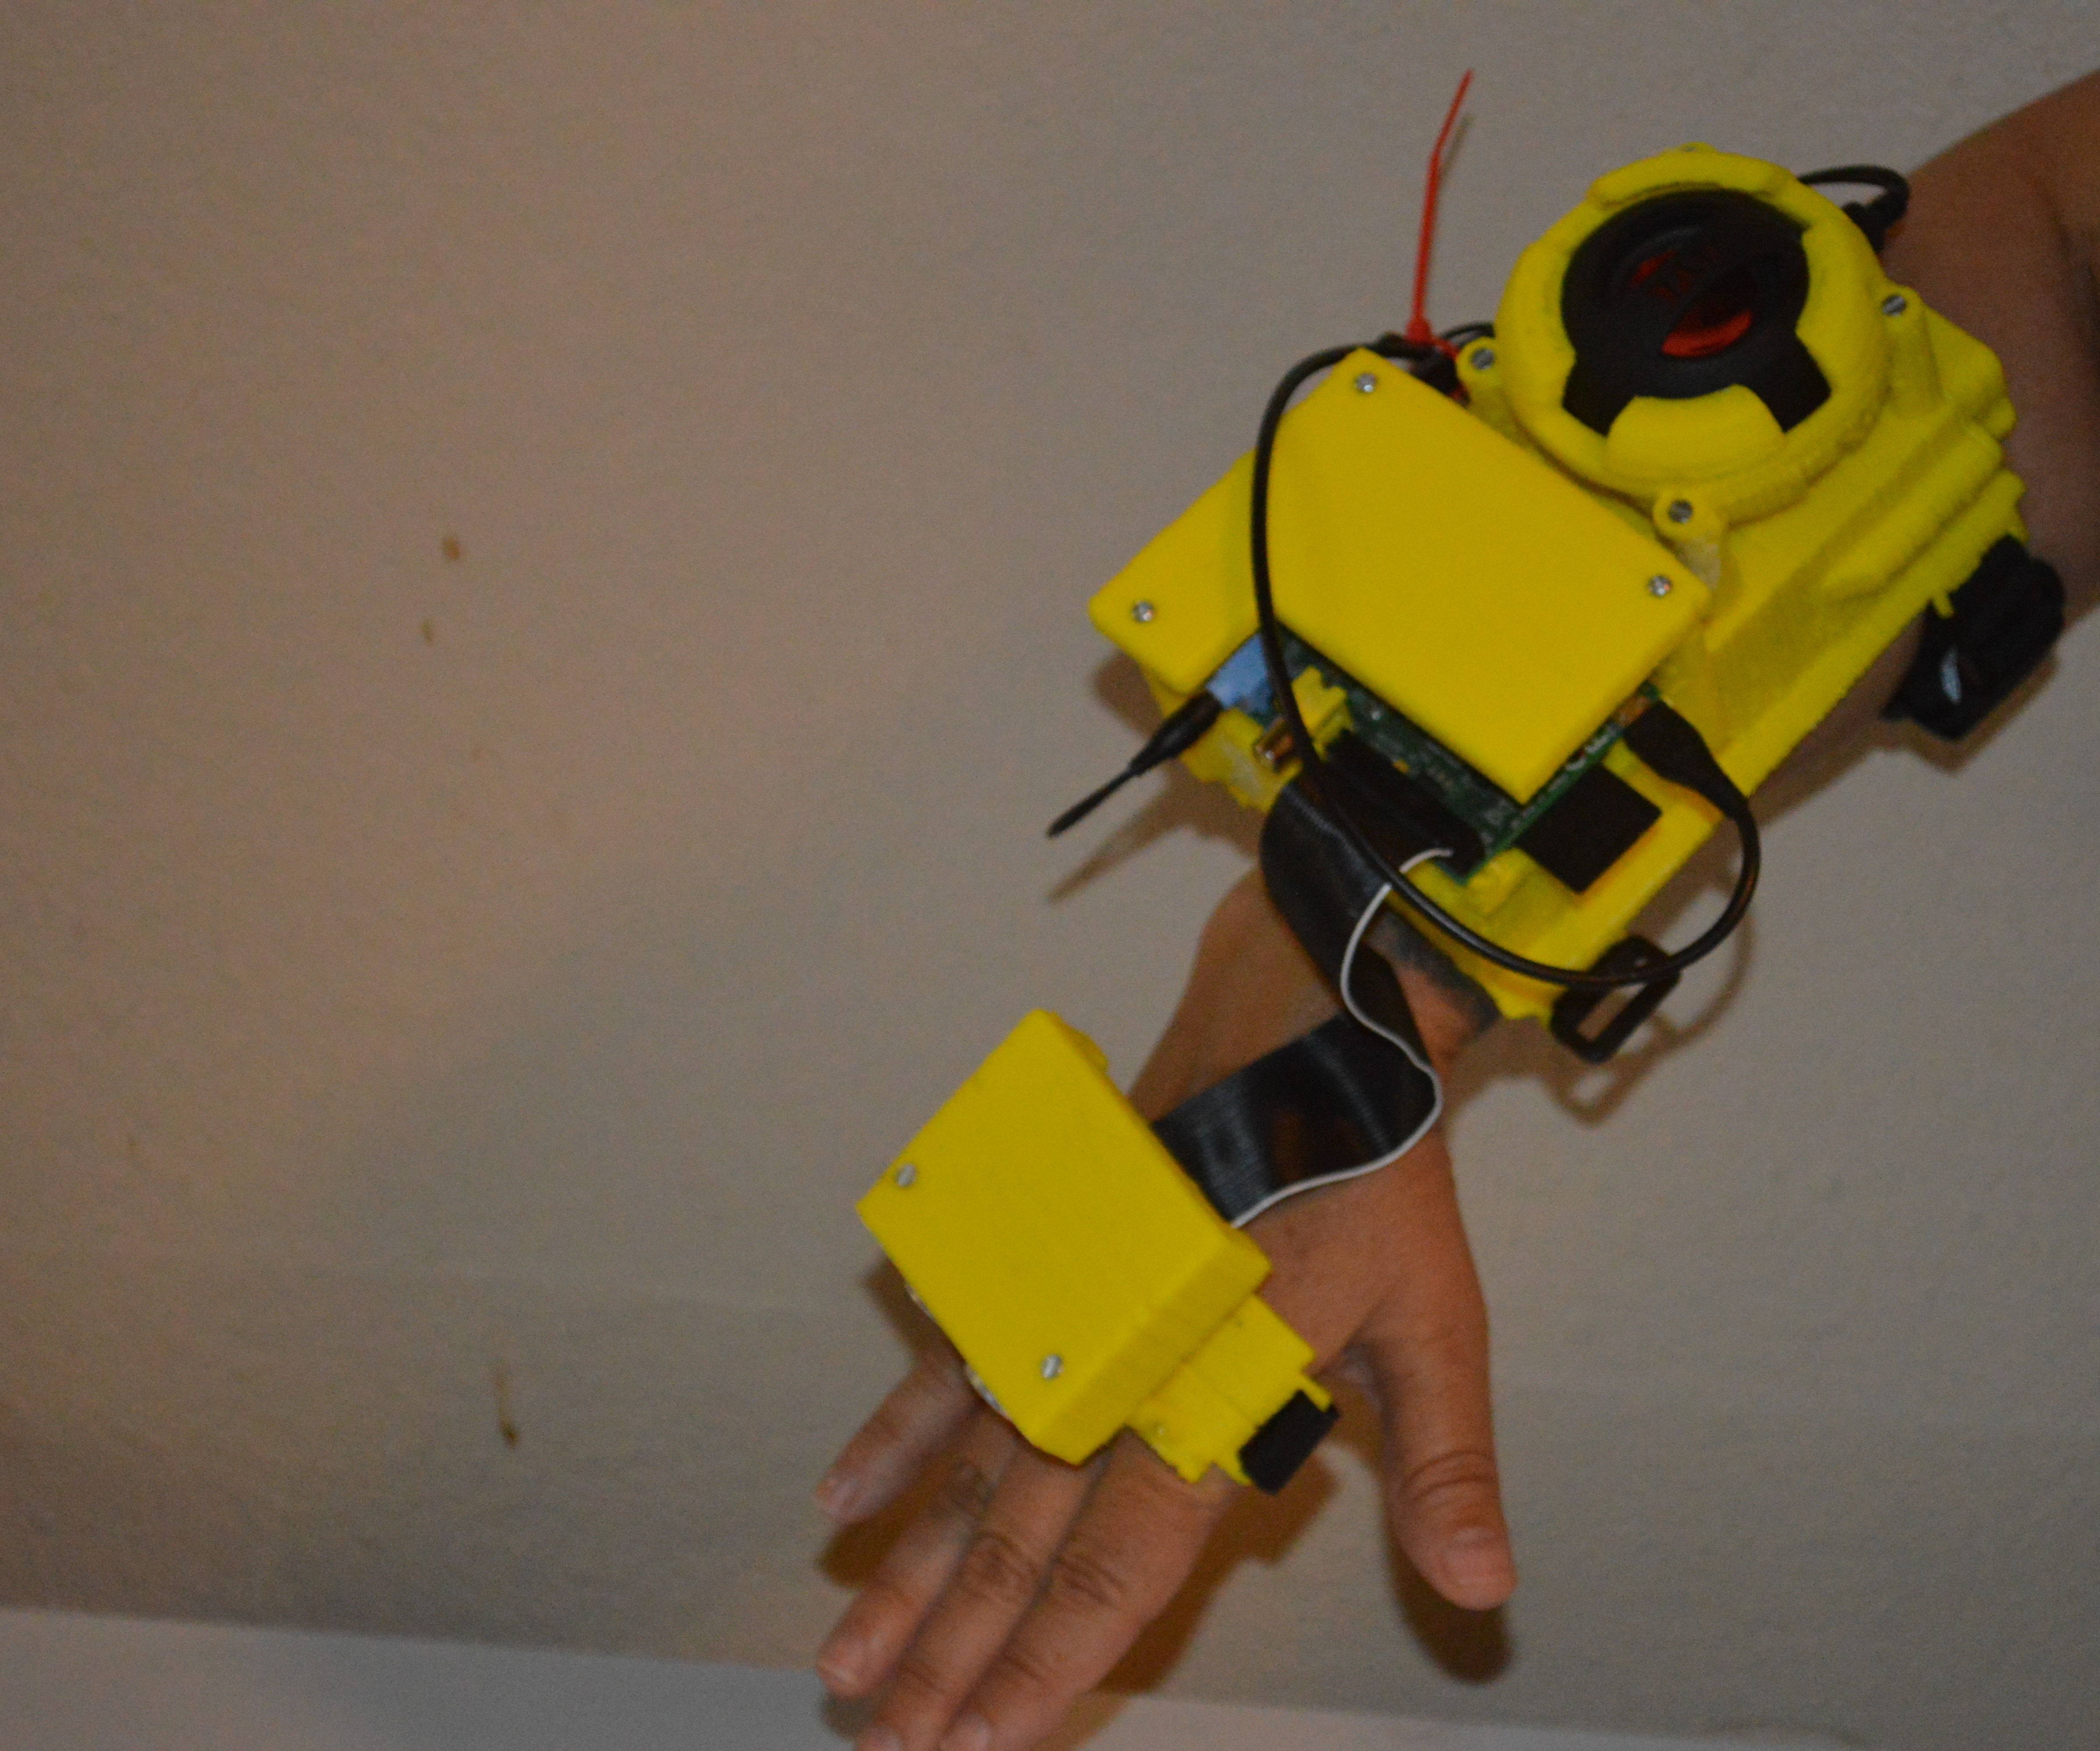 Ultrasonic sonar for the blind and visually impaired